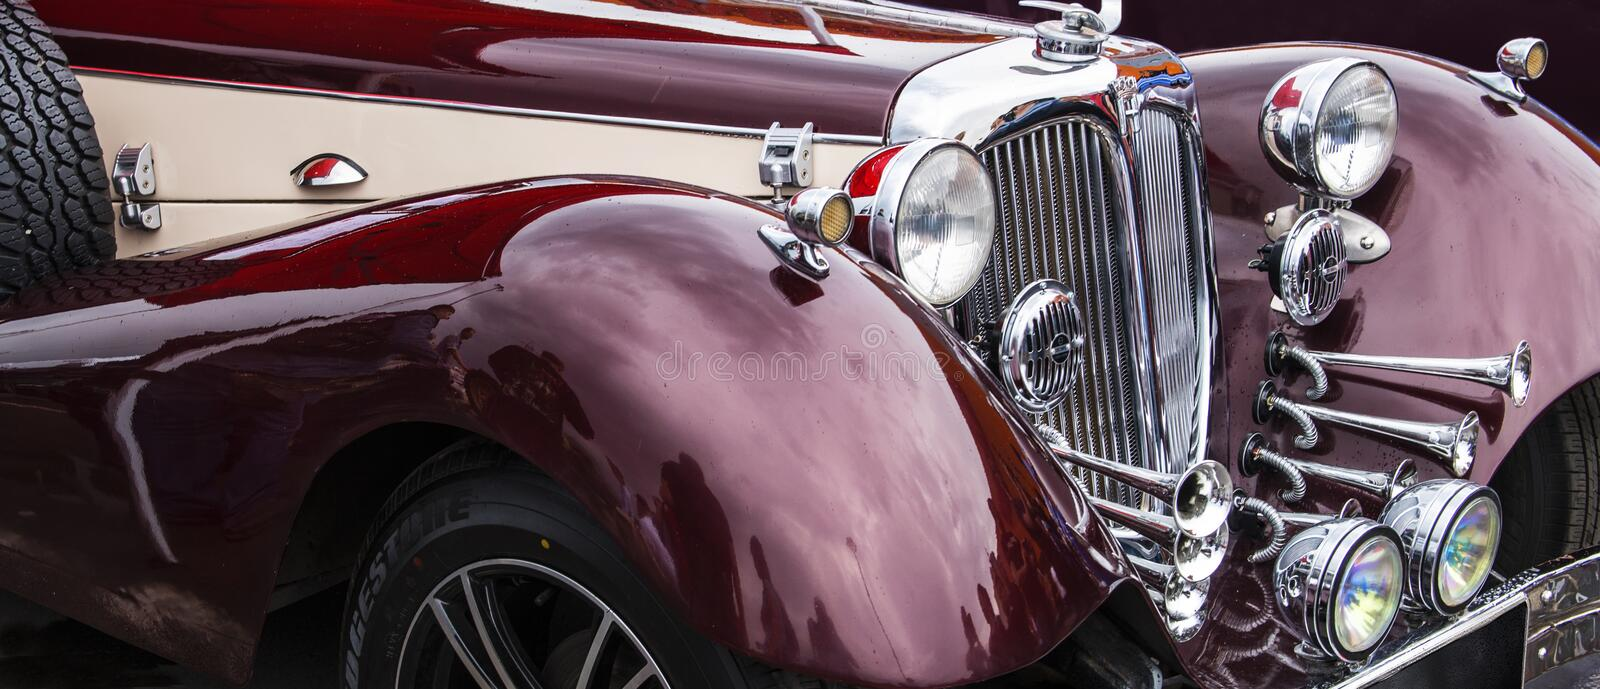 Car HORÐ¡H. 850. 1936-1940 years of production. Russia. Rostov-on-Don. May 25, 2018. International Tuning Festival YugMotorShow. Exhibition platform royalty free stock photography